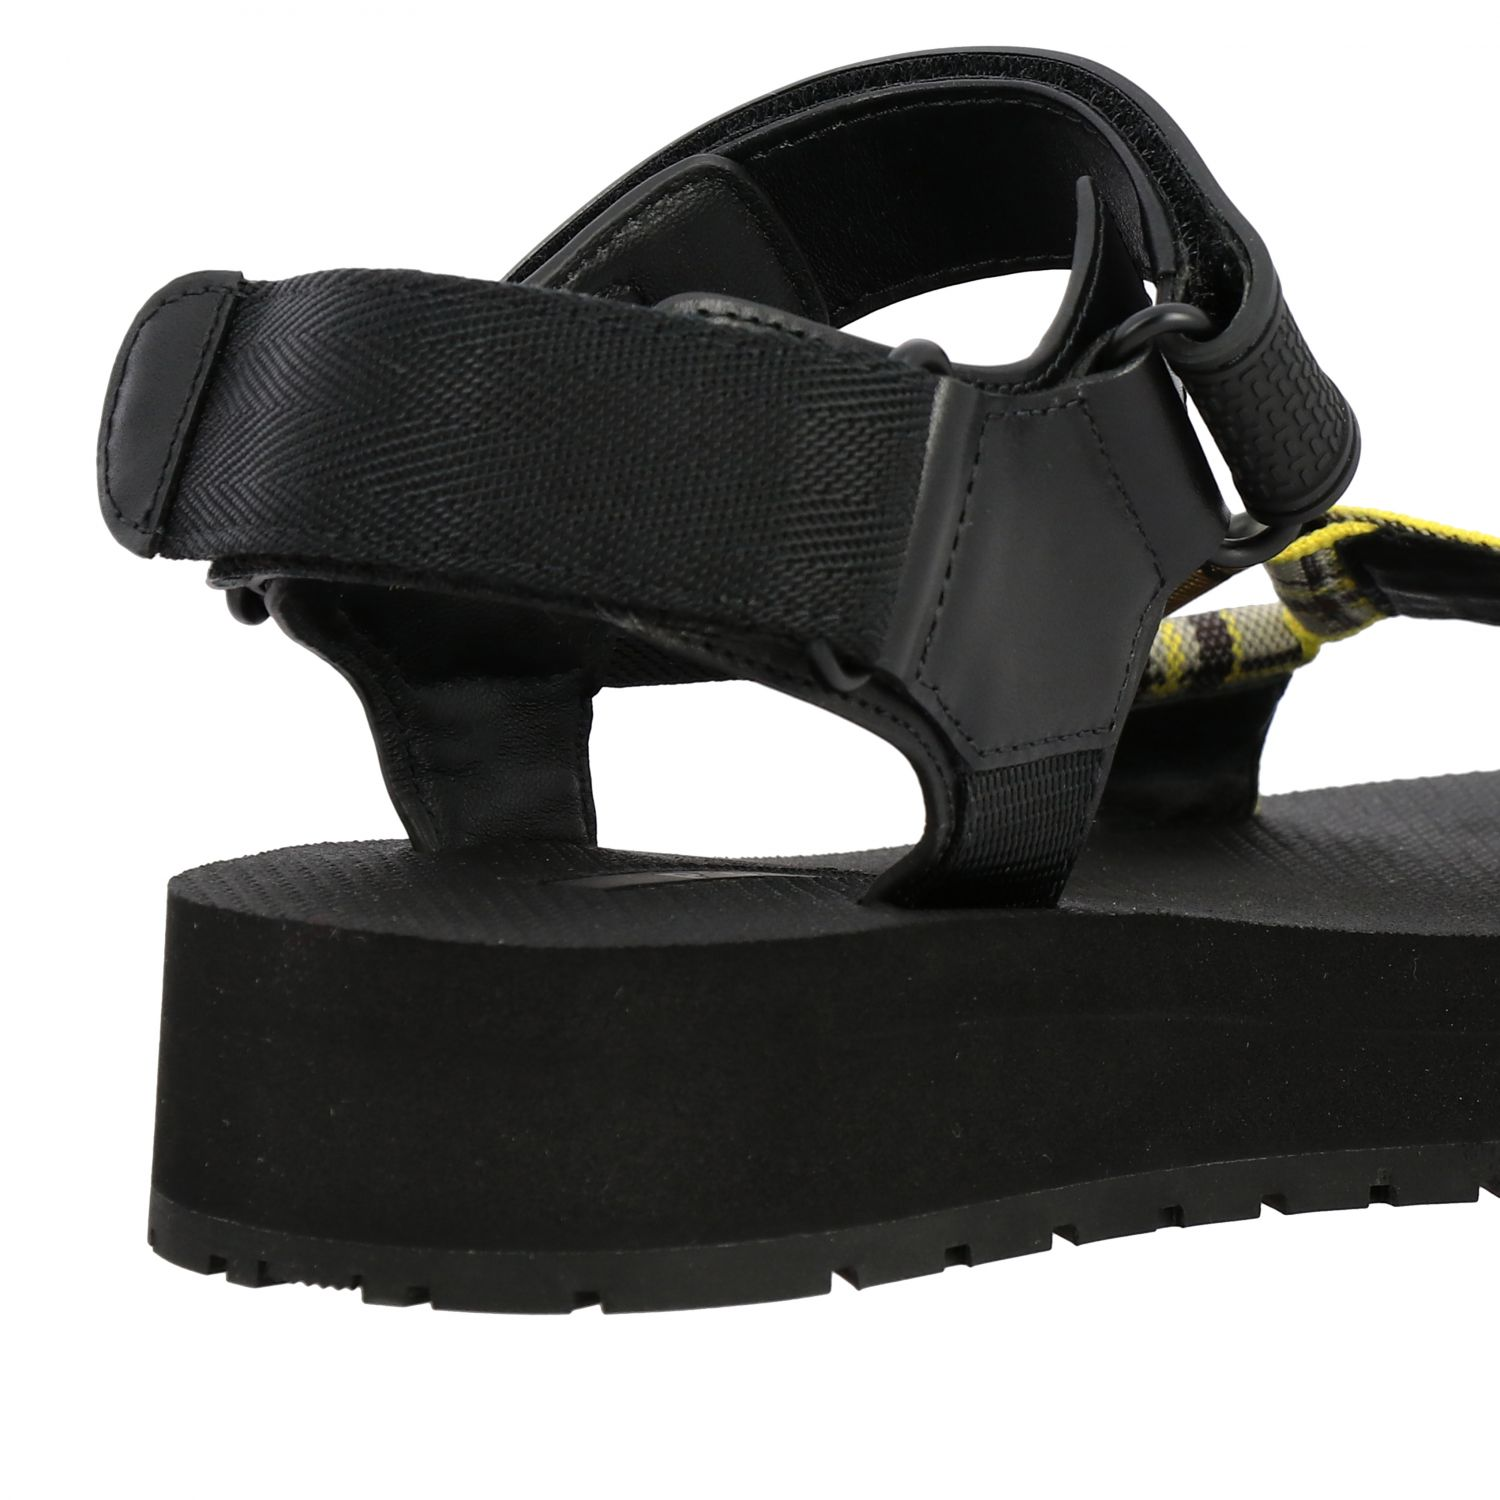 Shoes women Prada black 5